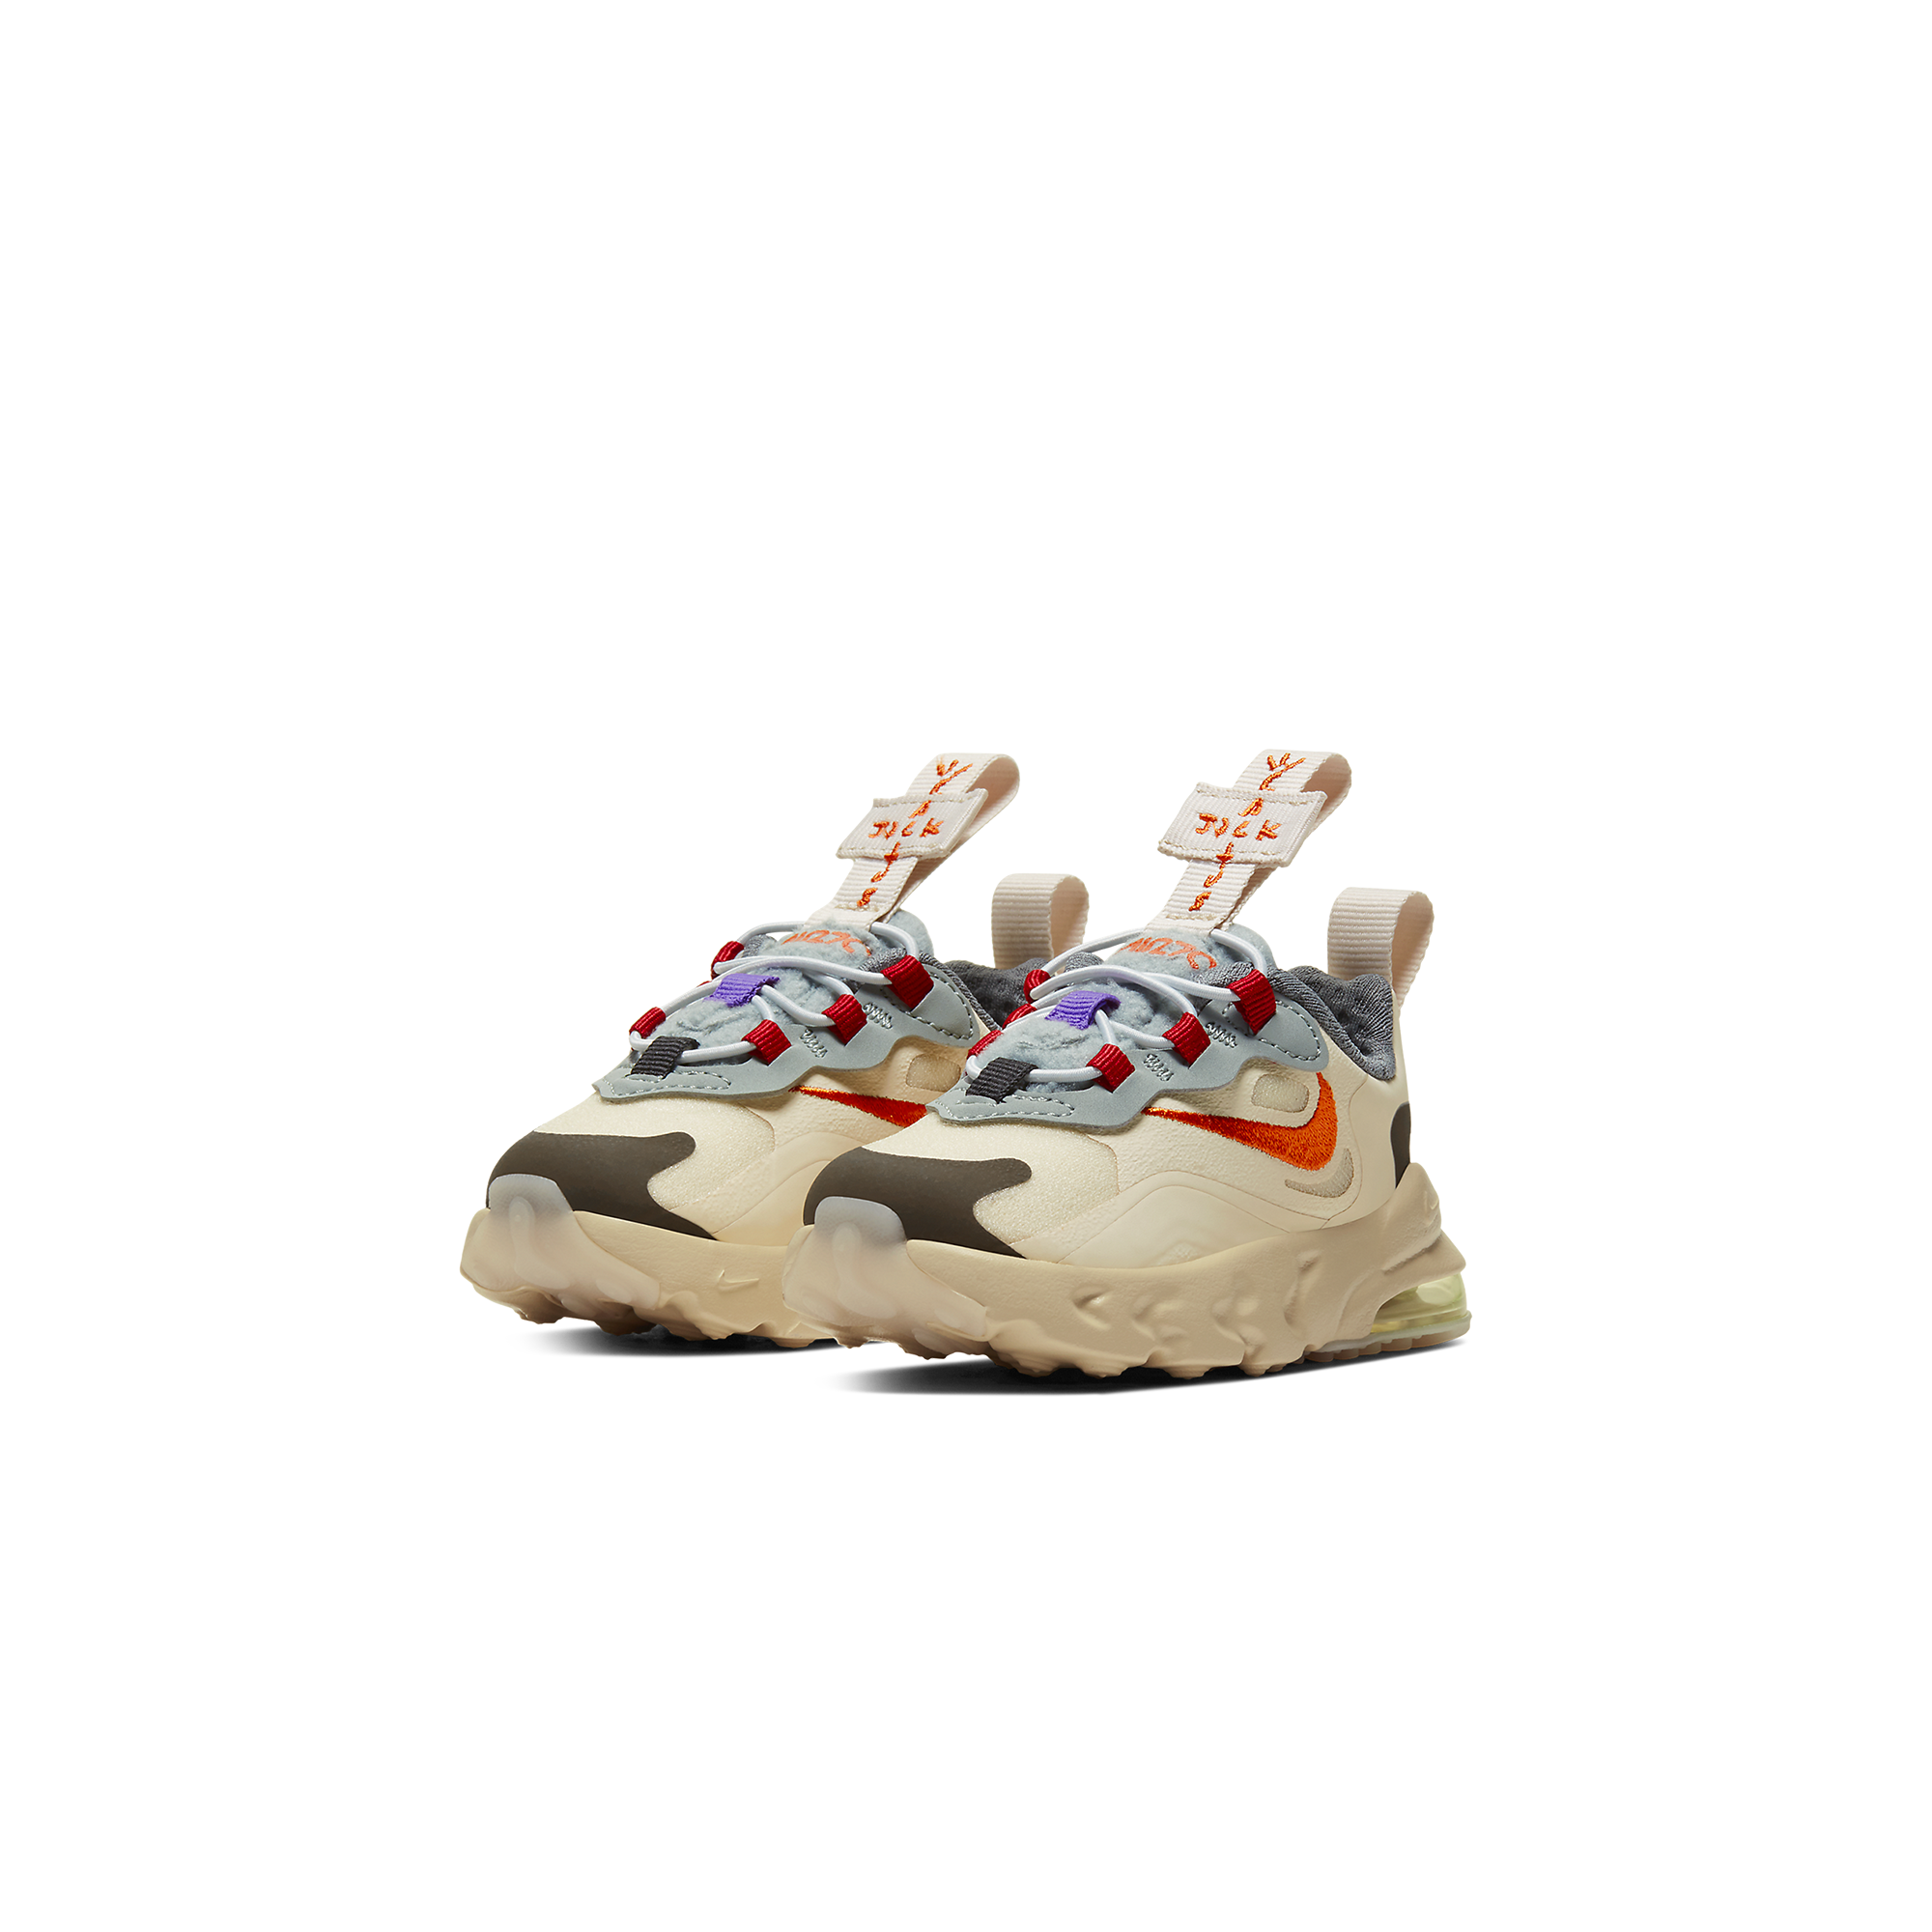 Nike Air Max 270 React Travis Scott (TD) - Cactus Trails